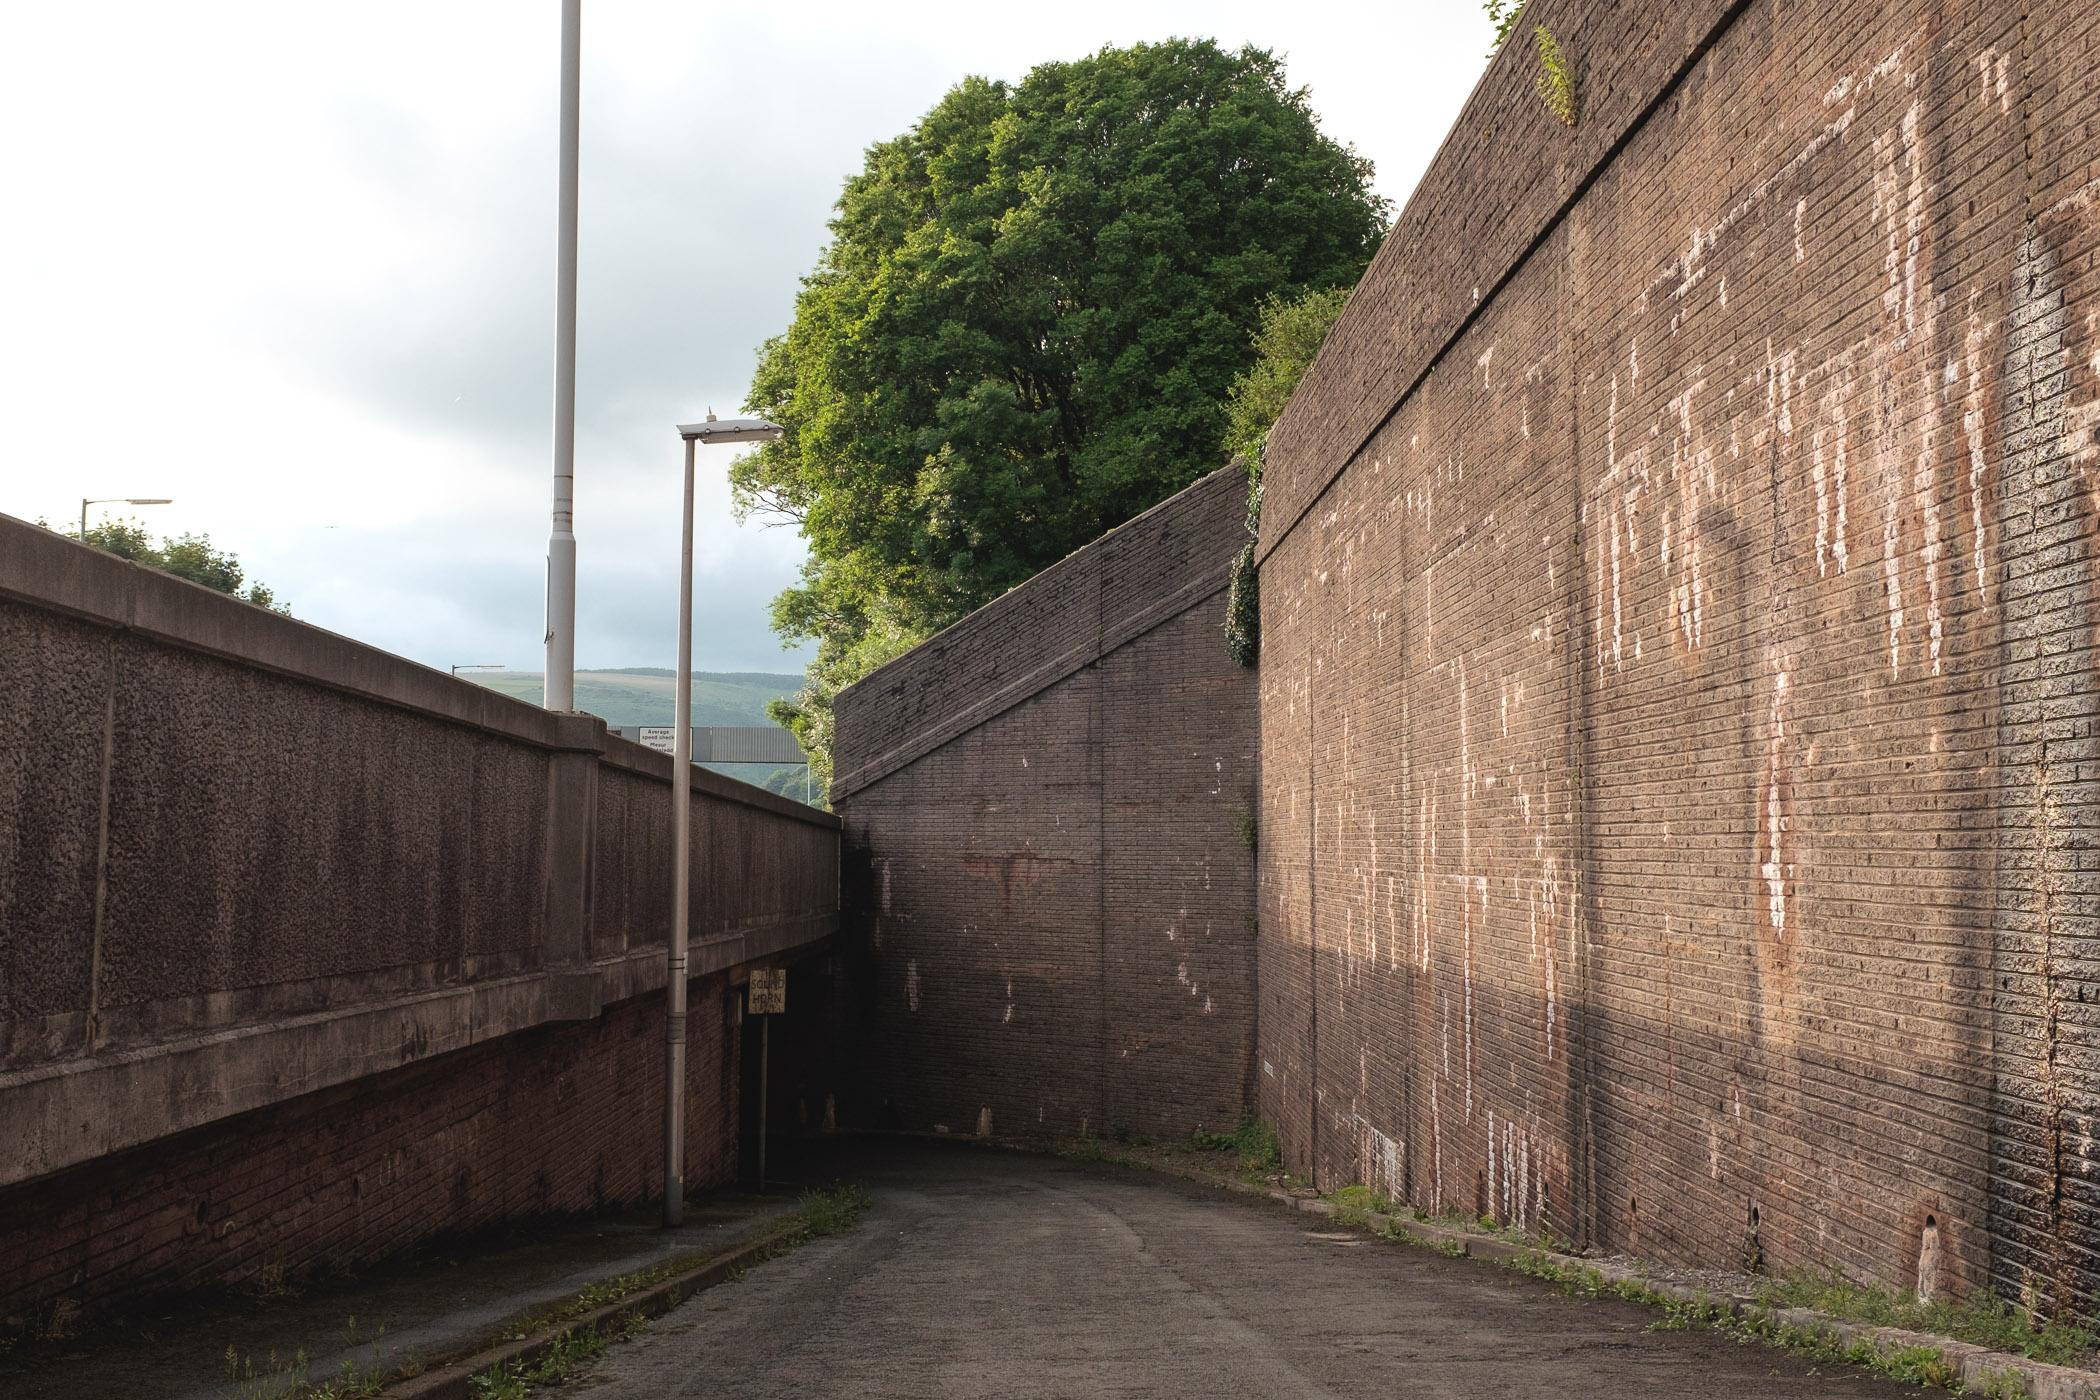 Inkerman Row, the site of a former barracks near Taibach, Port Talbot, Wales.